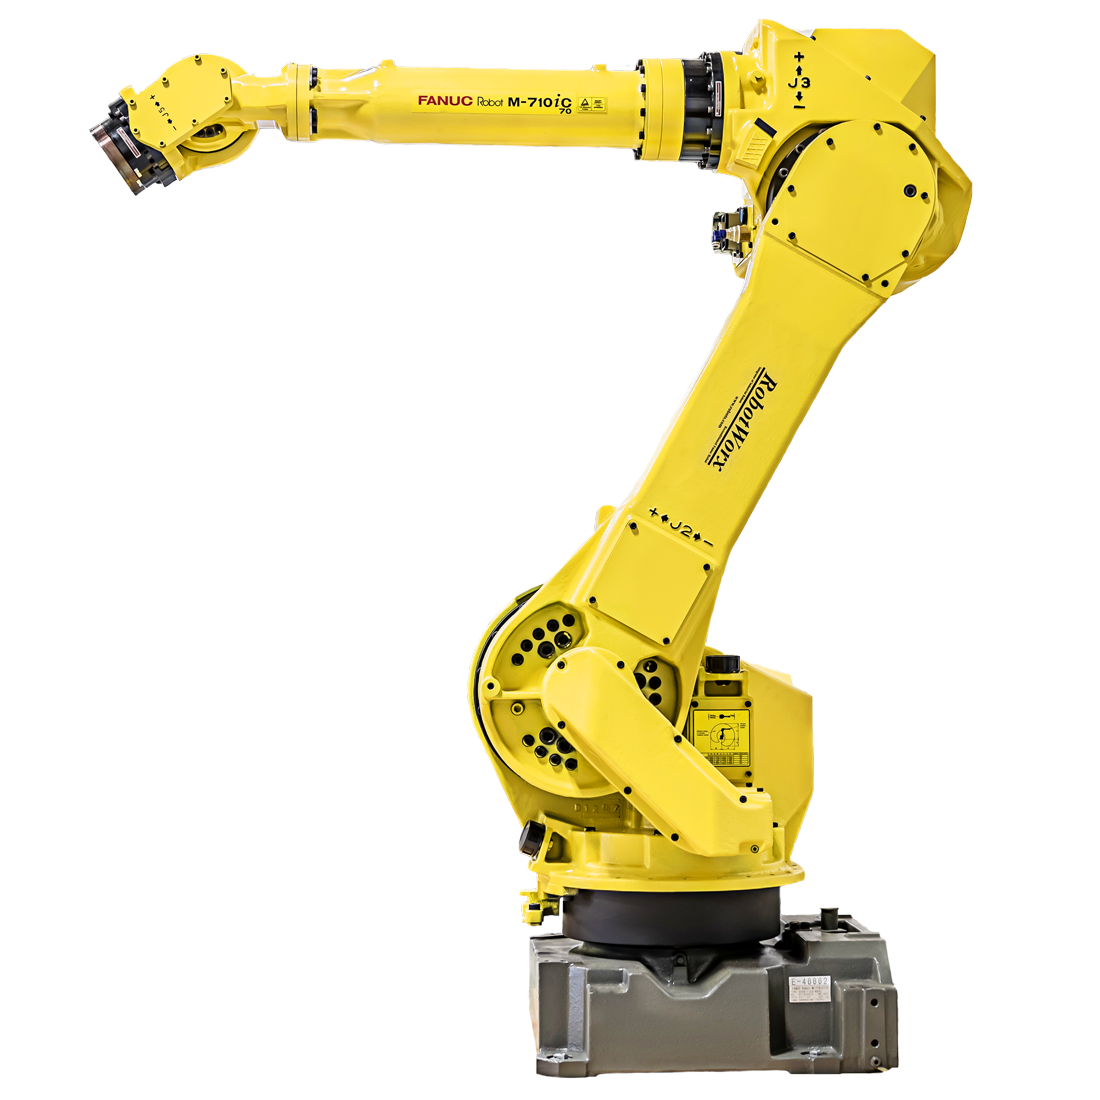 RobotWorx - FANUC M-710iC/70